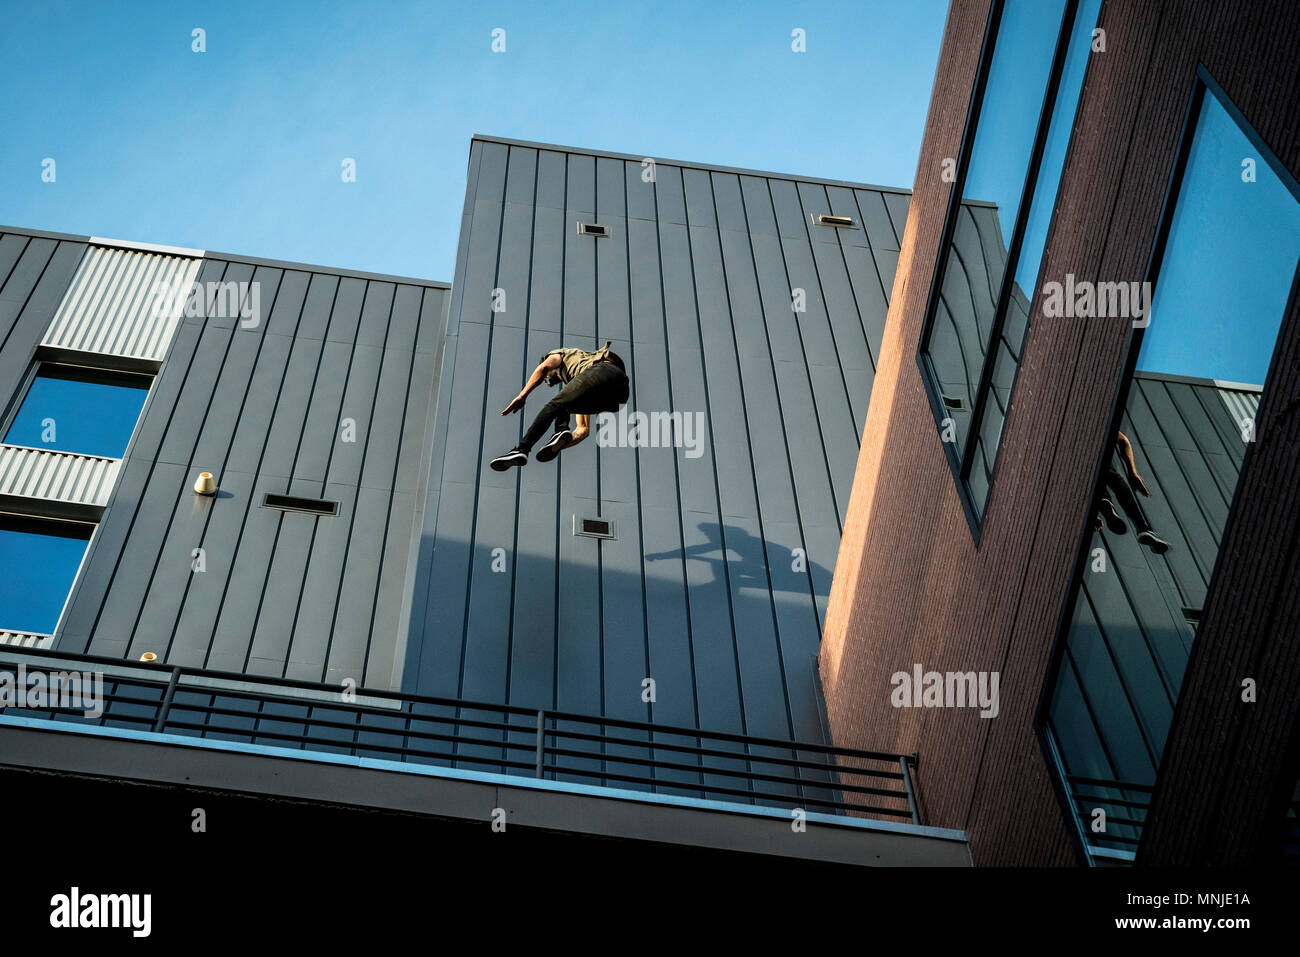 Male park athlete jumping from one roof to another in downtown Denver, Colorado, USA - Stock Image